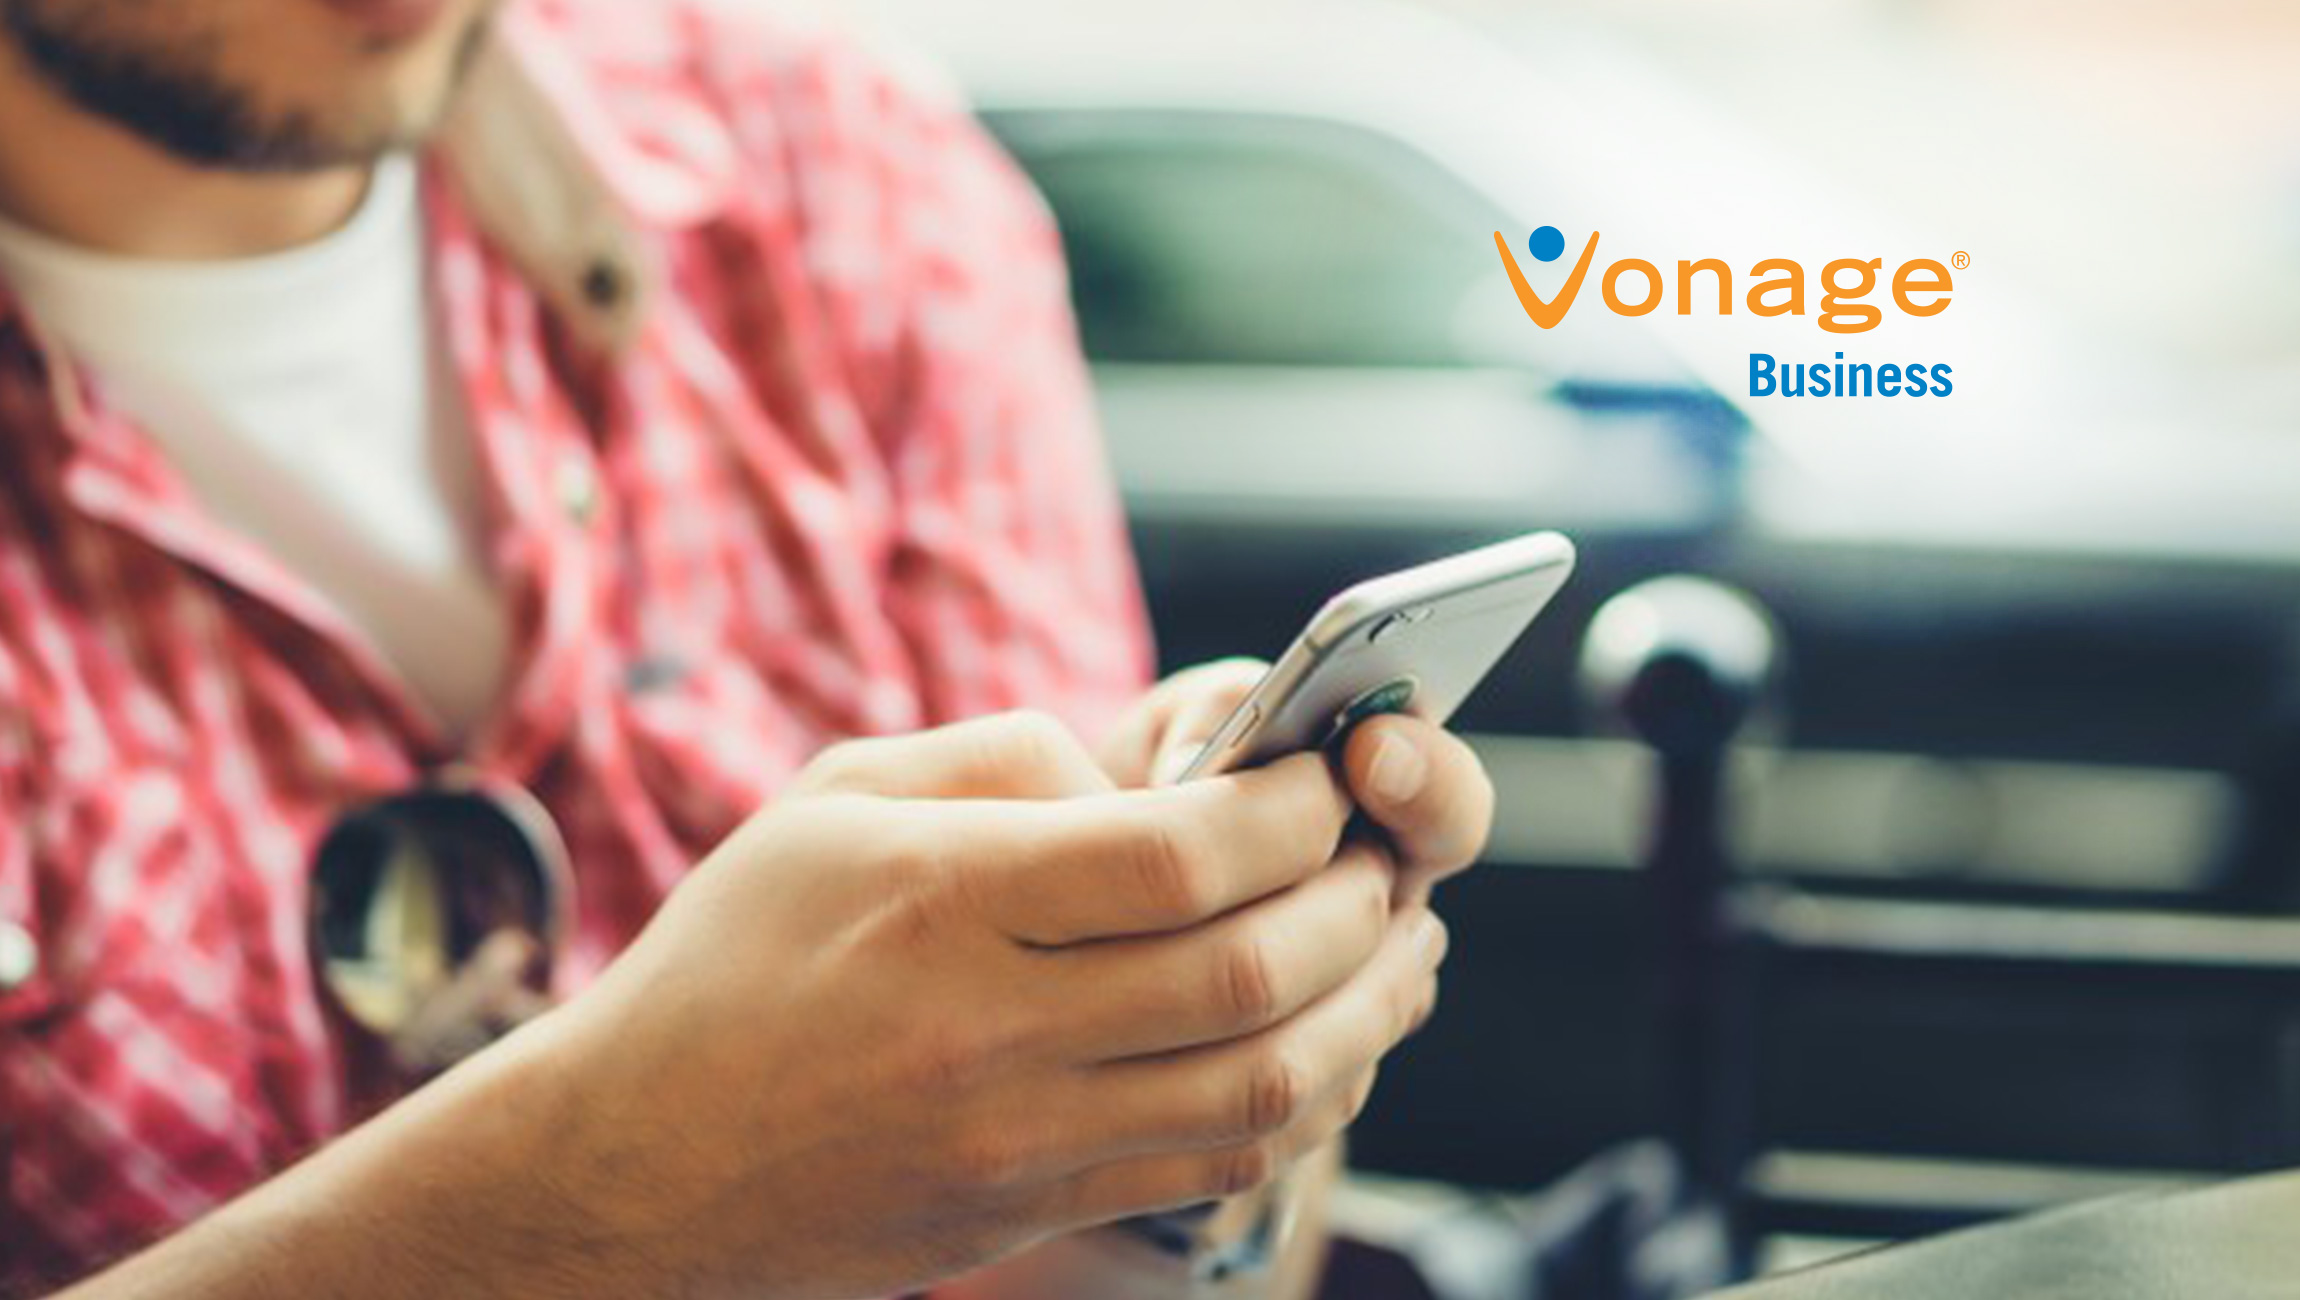 Aragon Research Positions Vonage as a Leader in the Globe For Unified Communications and Collaboration